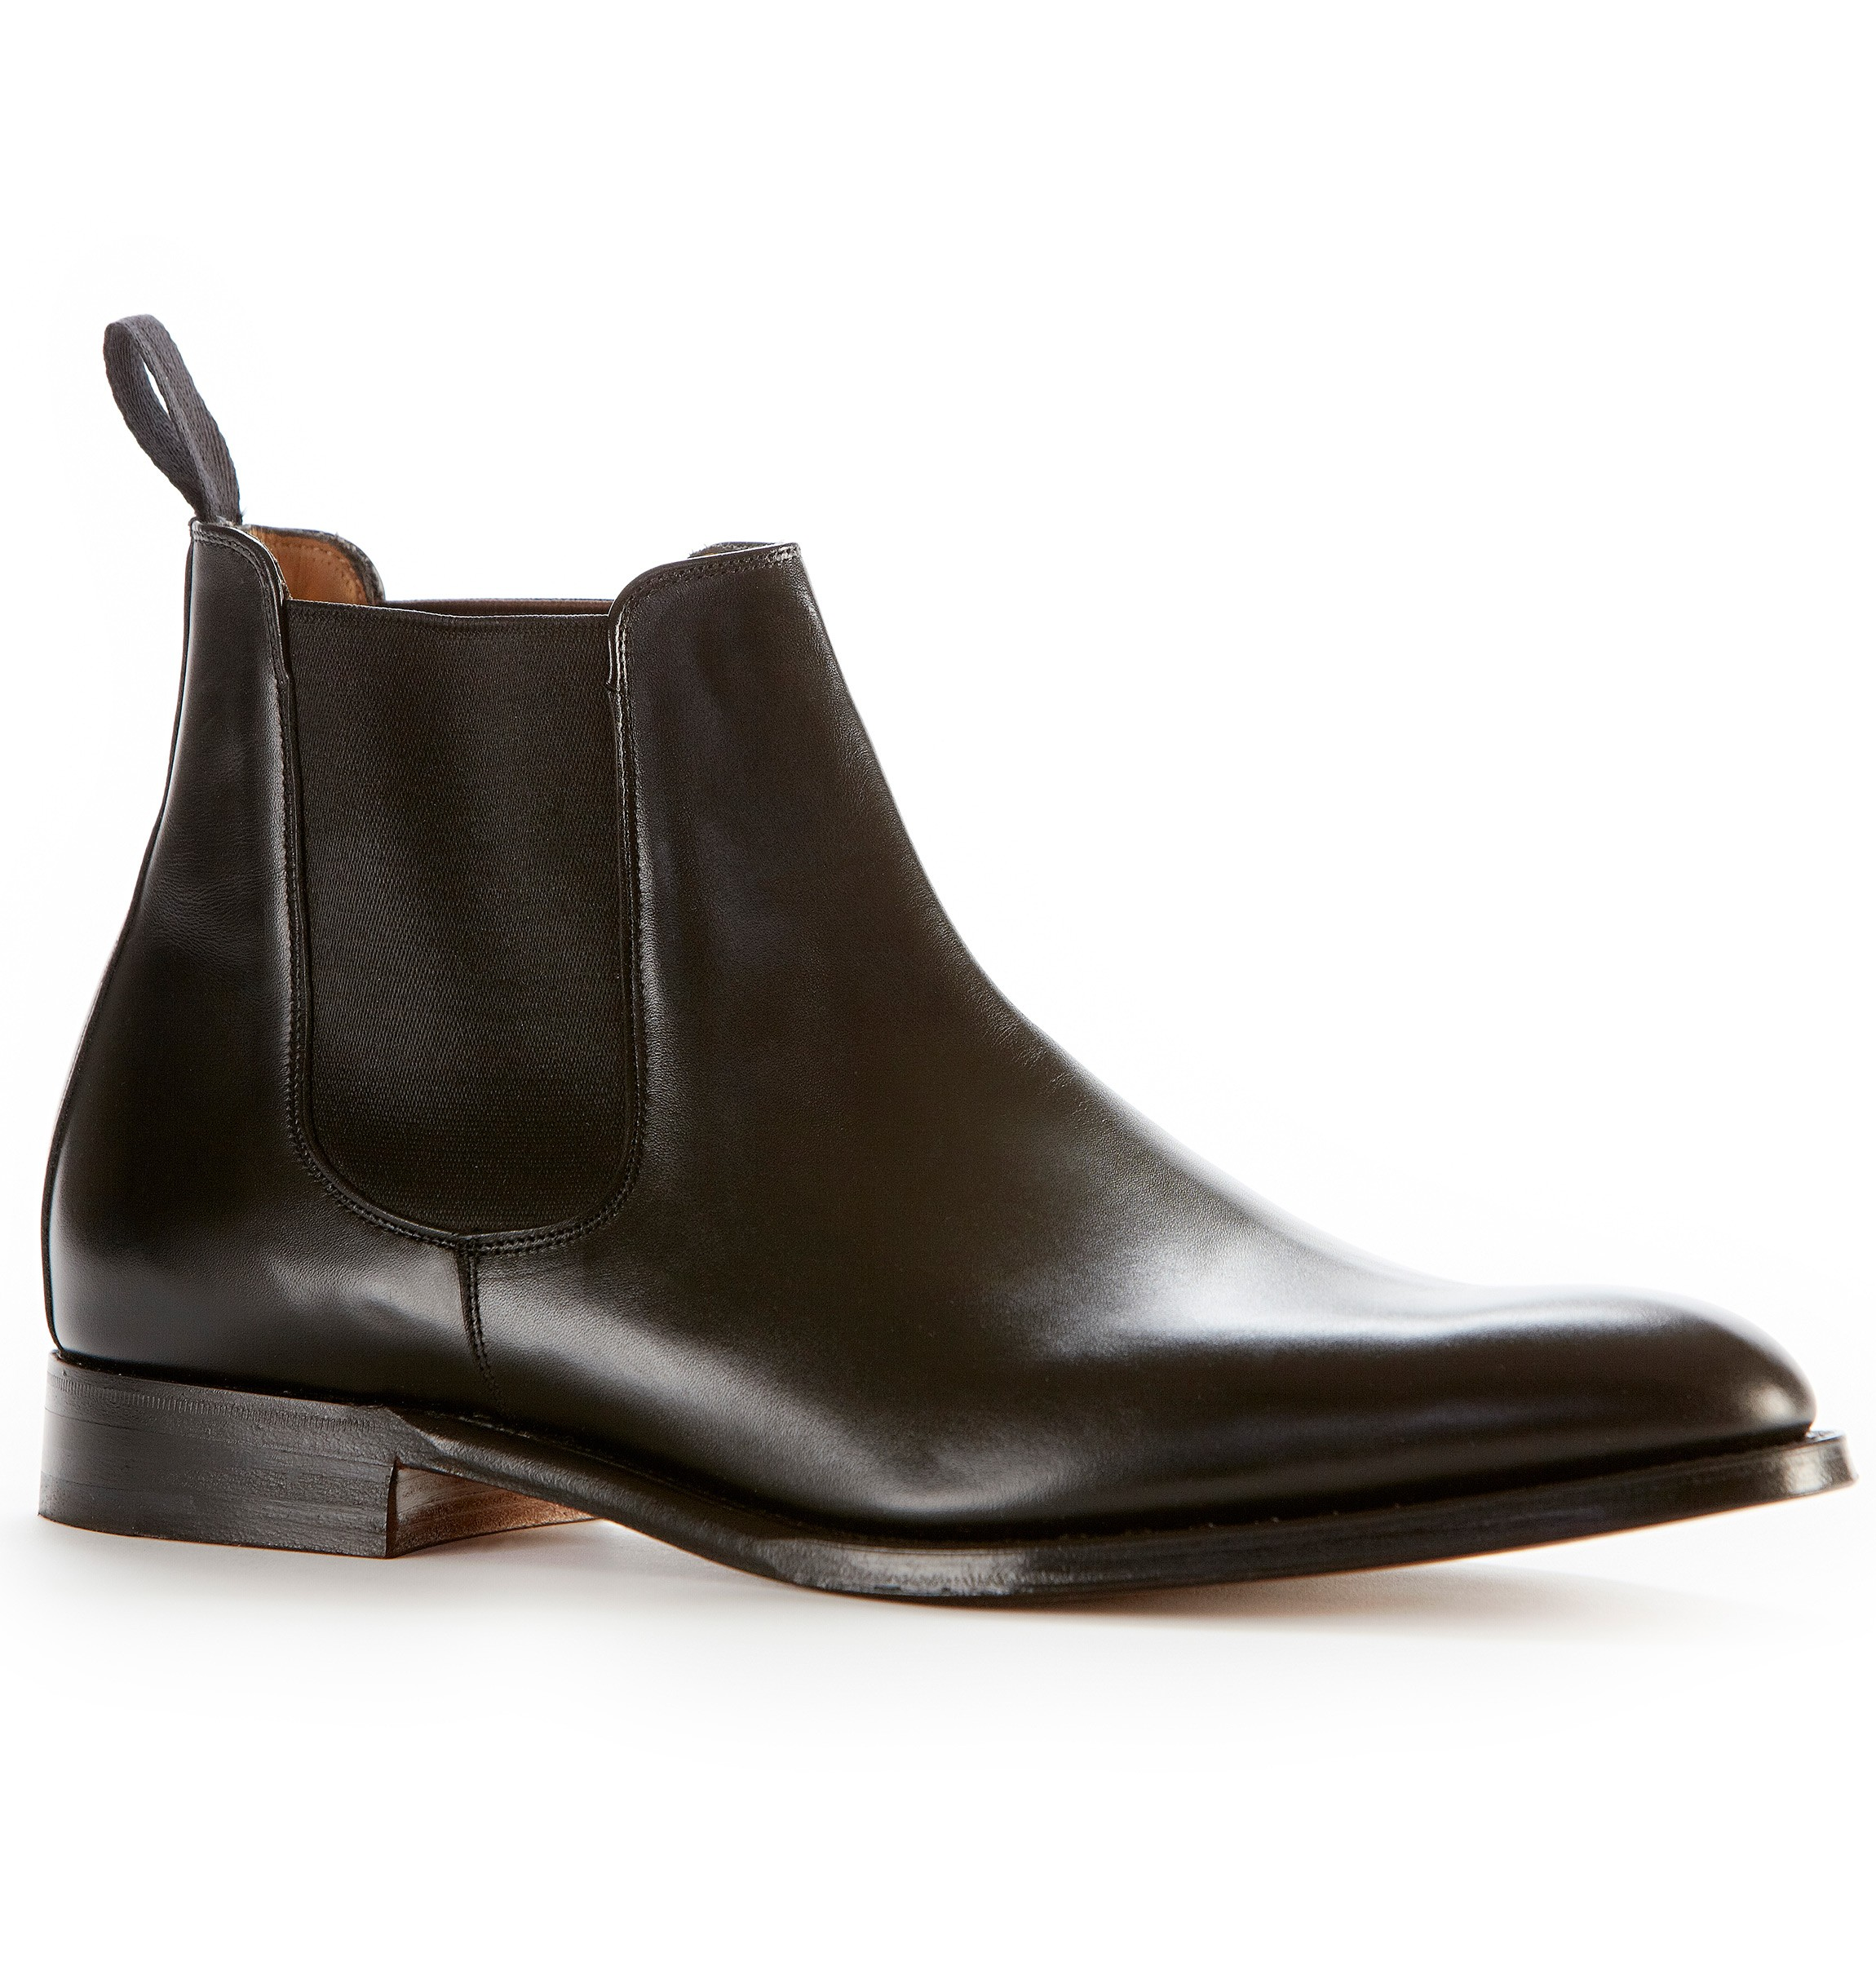 sunspel joseph cheaney chelsea boot in black for men lyst. Black Bedroom Furniture Sets. Home Design Ideas